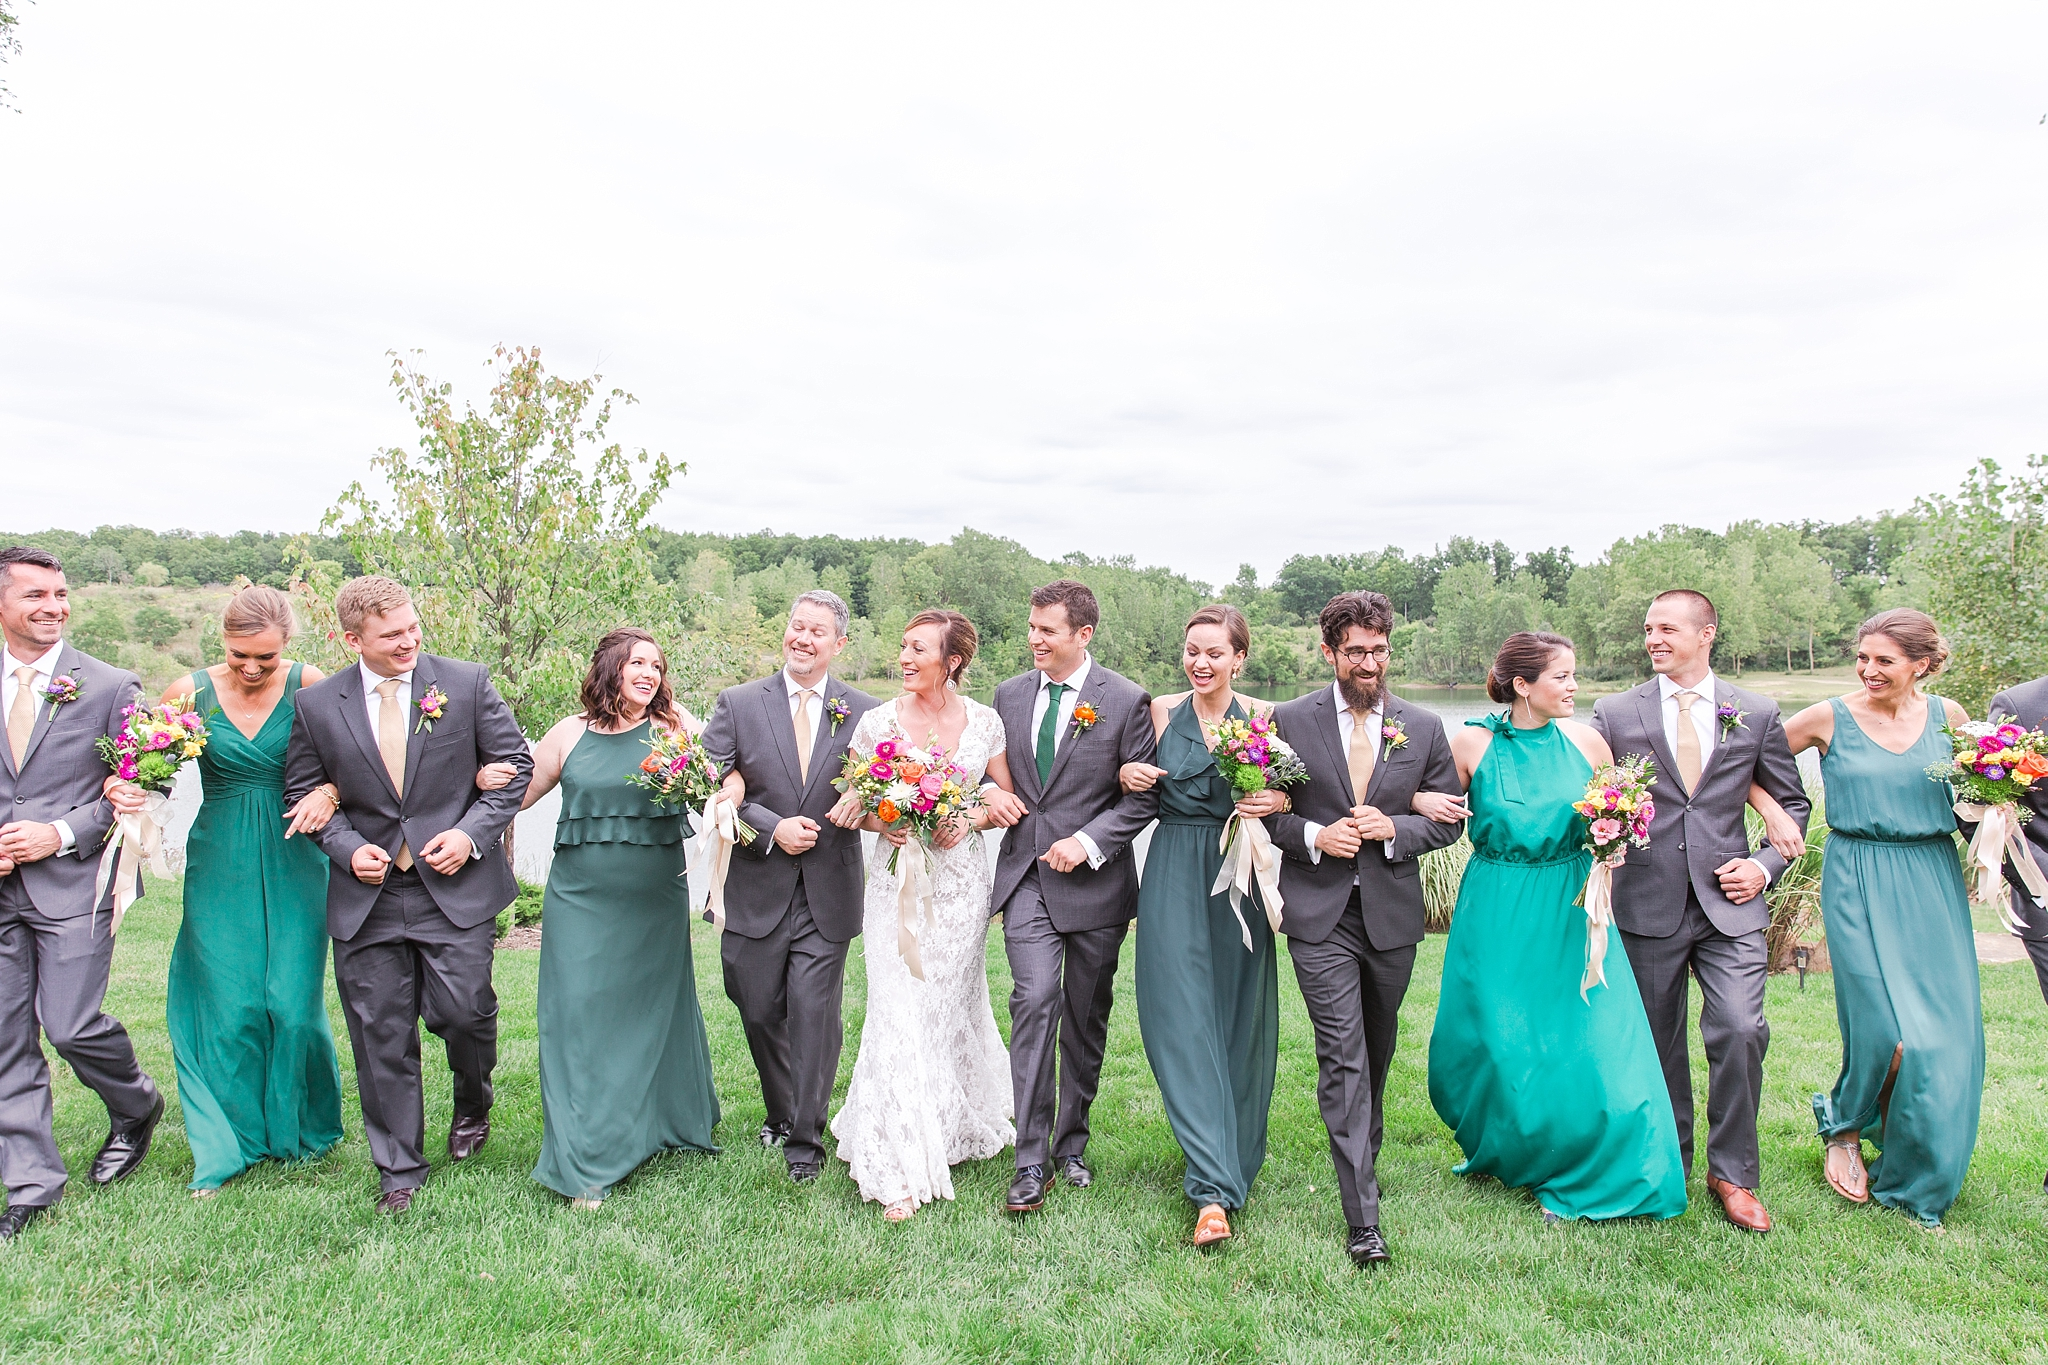 romantic-artful-candid-wedding-photos-in-detroit-lansing-ann-arbor-northern-michigan-and-chicago-by-courtney-carolyn-photography_0025.jpg